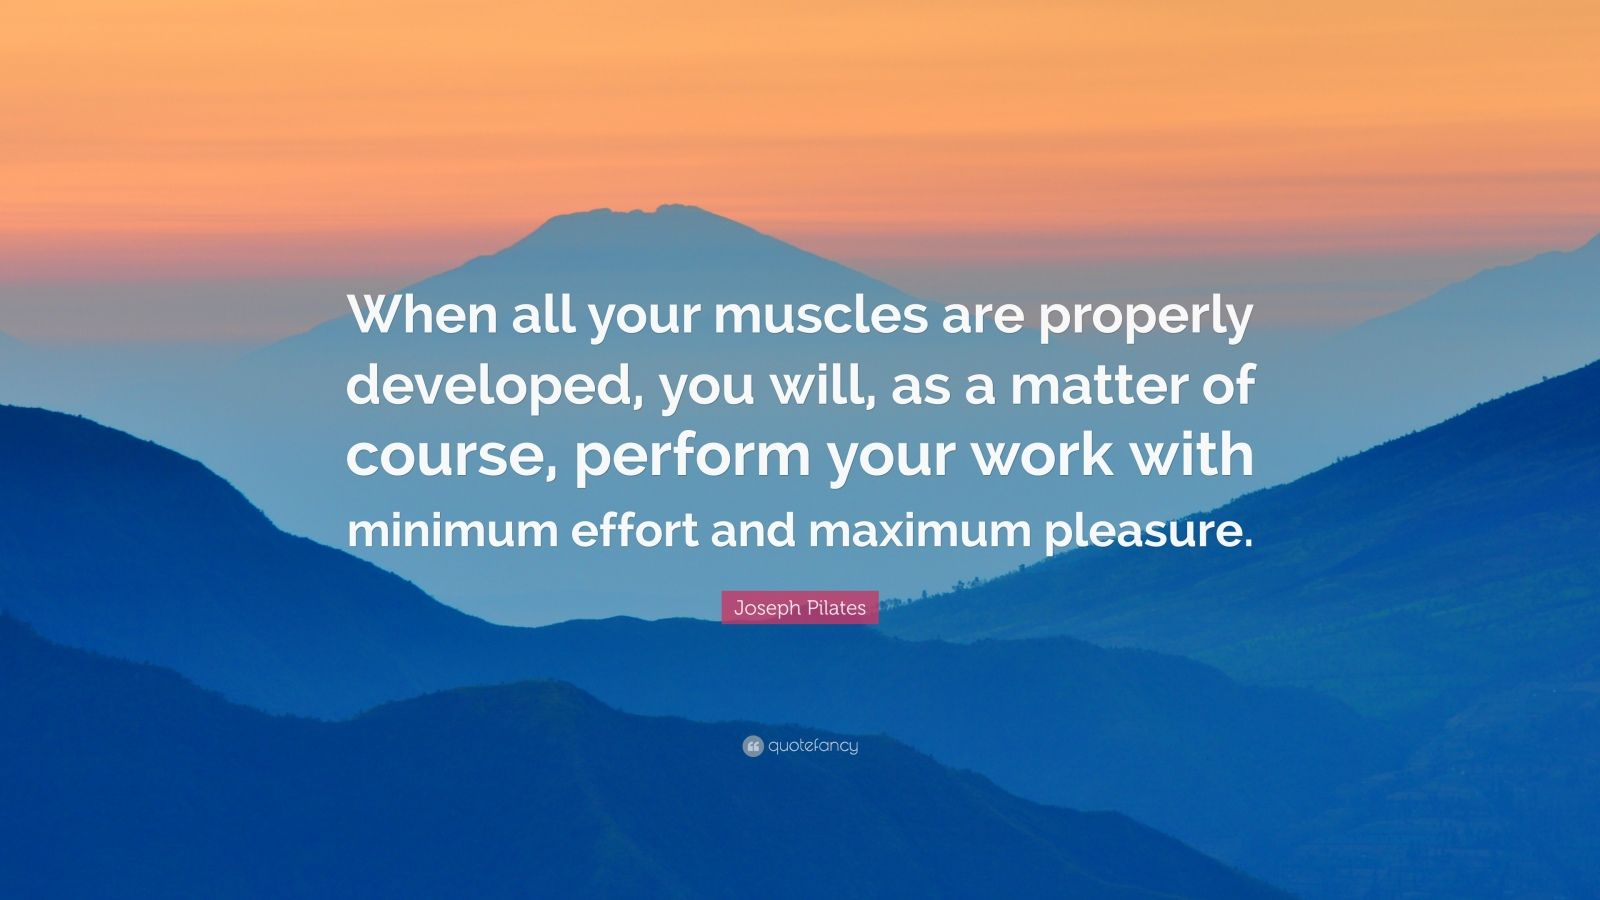 """Joseph Pilates Quote: """"When all your muscles are properly developed, you will, as a matter of course, perform your work with minimum effort and maximum pleasure."""""""